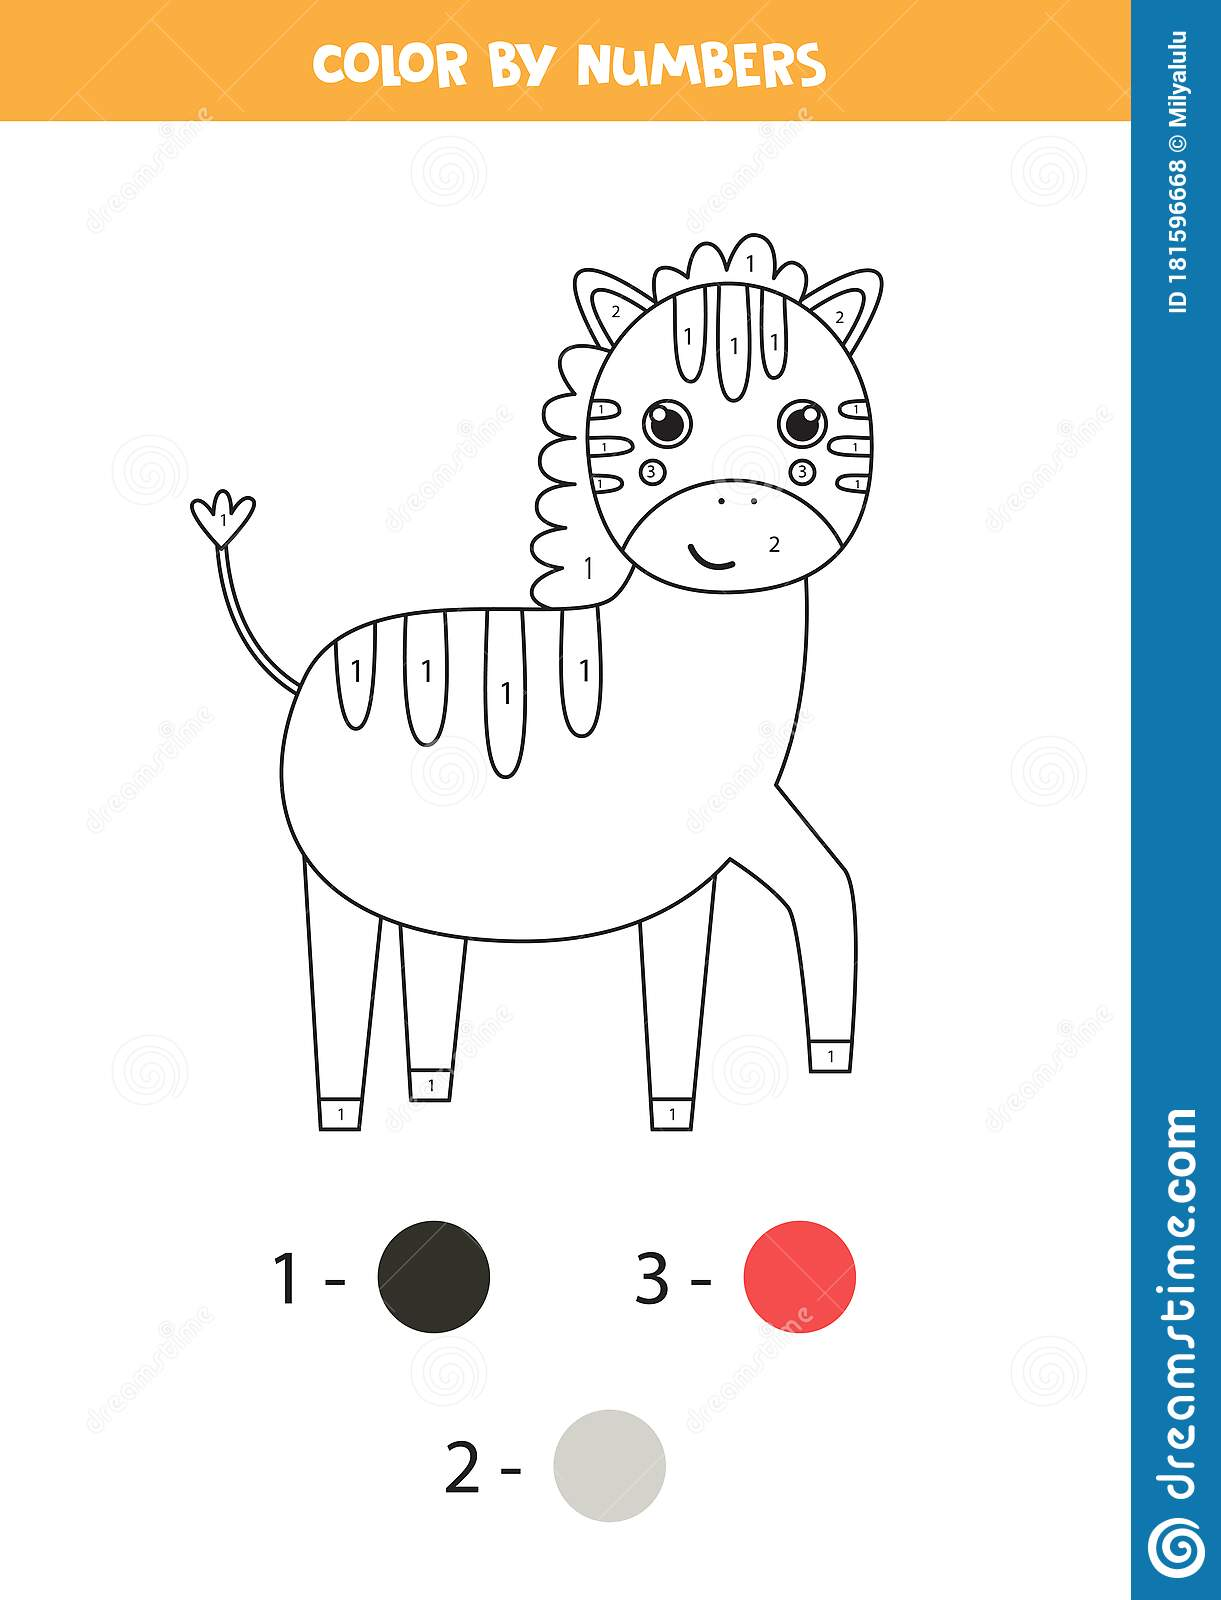 Coloring Page By Numbers For Kids Cute Cartoon Zebra